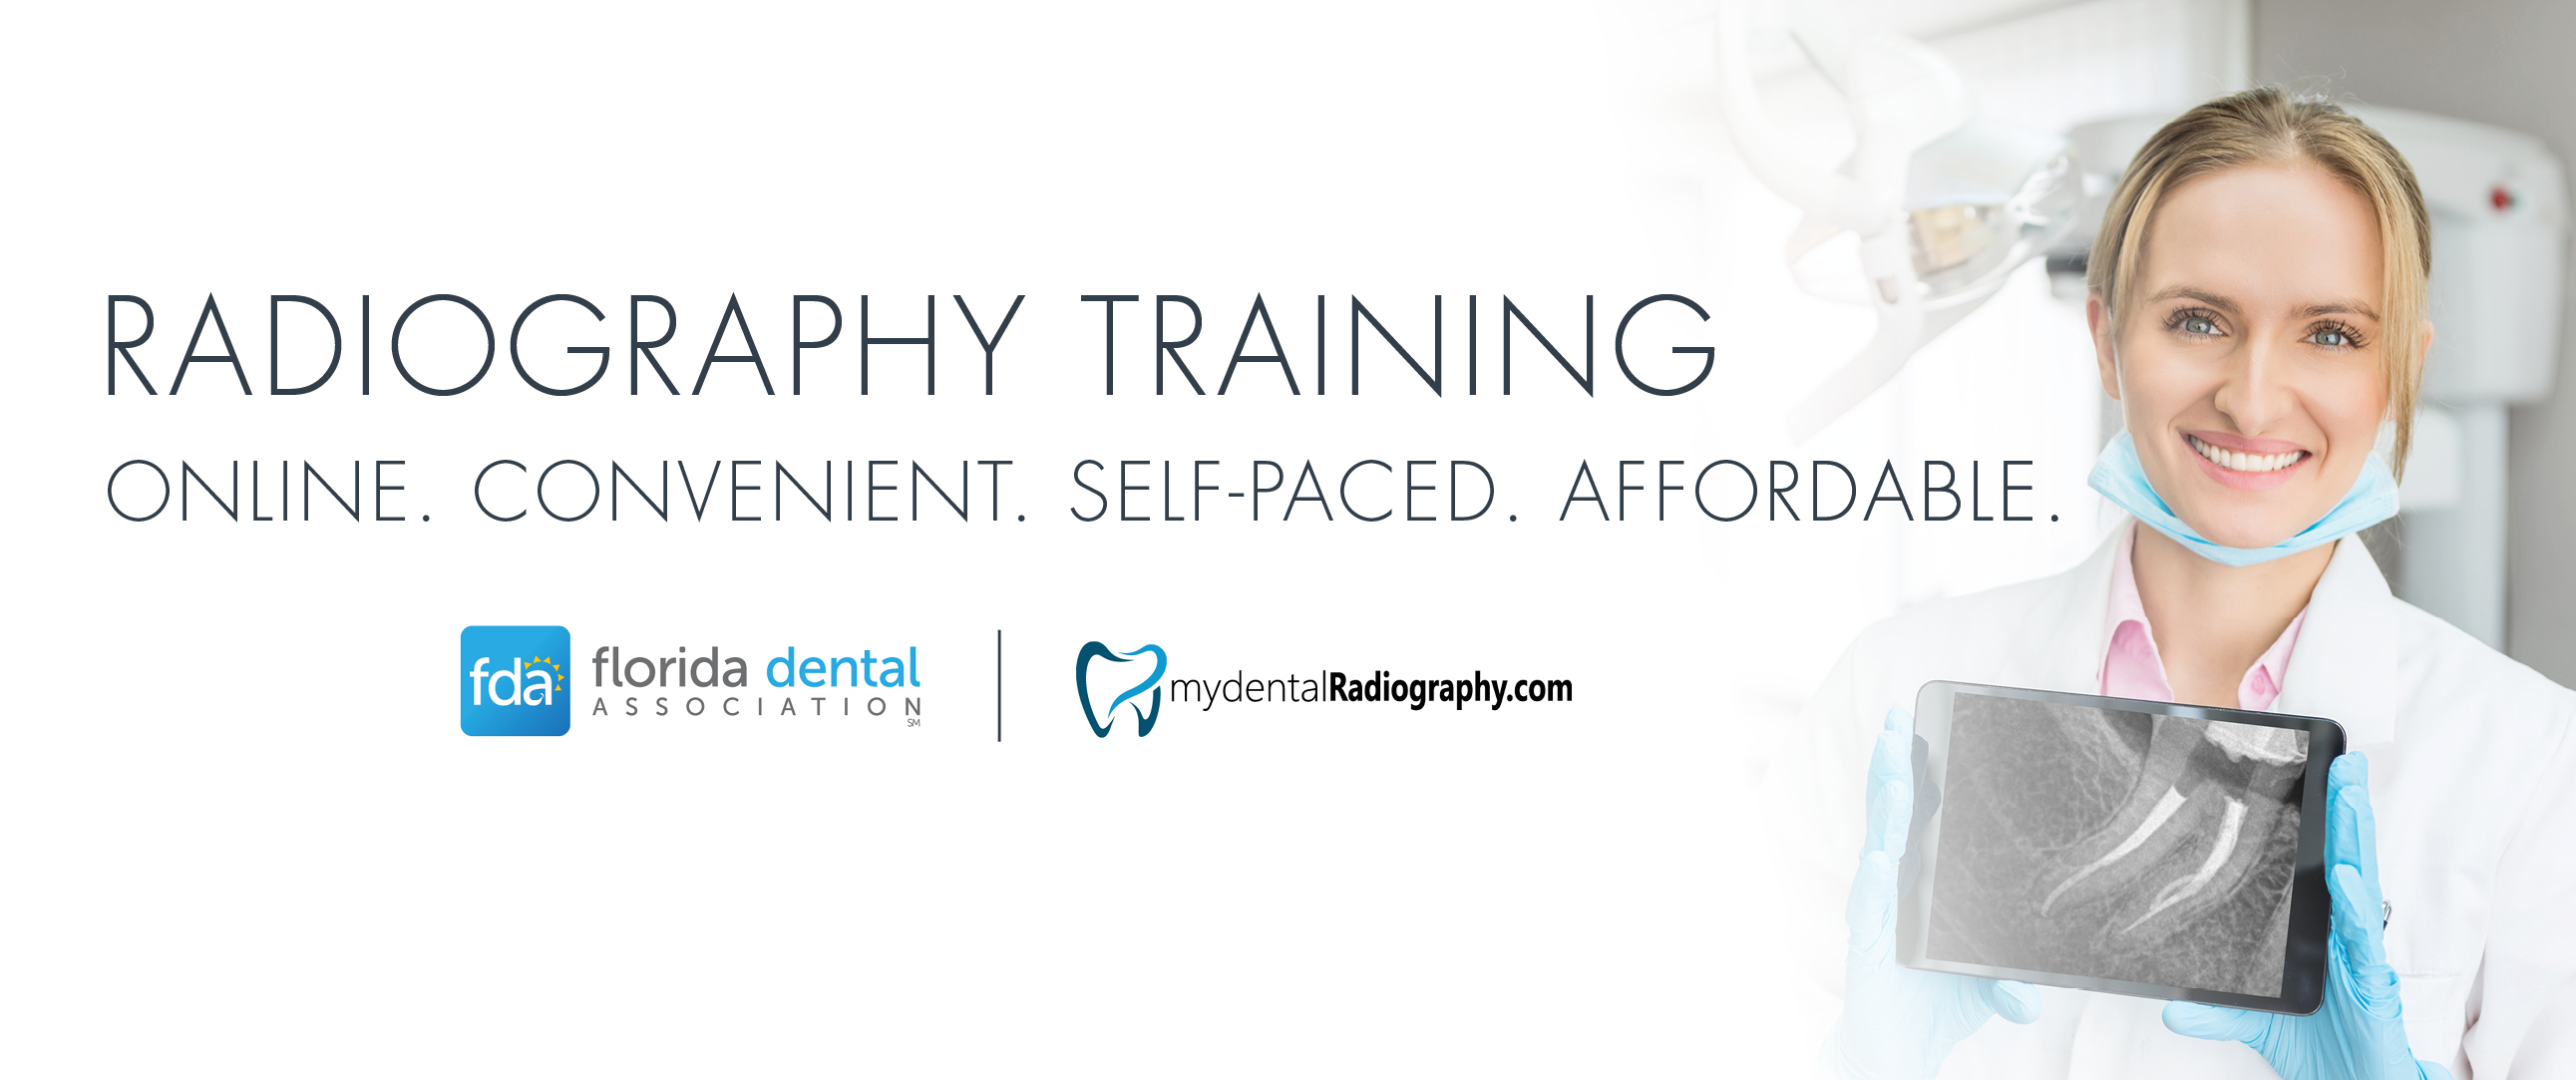 WEB BANNER_FDA_0291_ Radiography Course Marketing_620 x 260